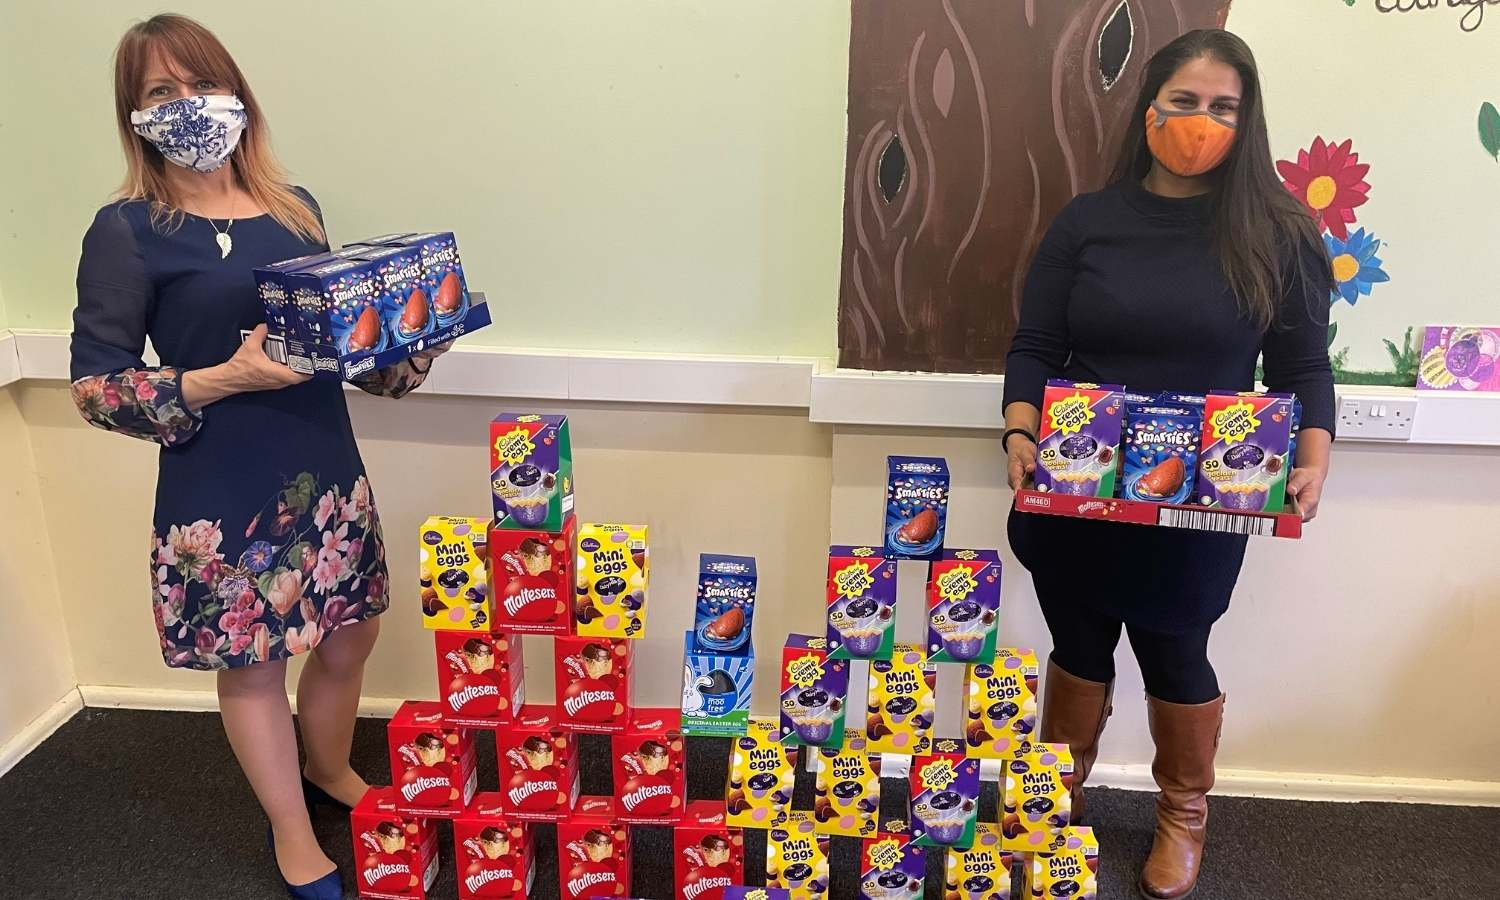 NOWELL MELLER DONATE EASTER EGGS TO FAMILIES AFFECTED BY CHILDHOOD CANCER